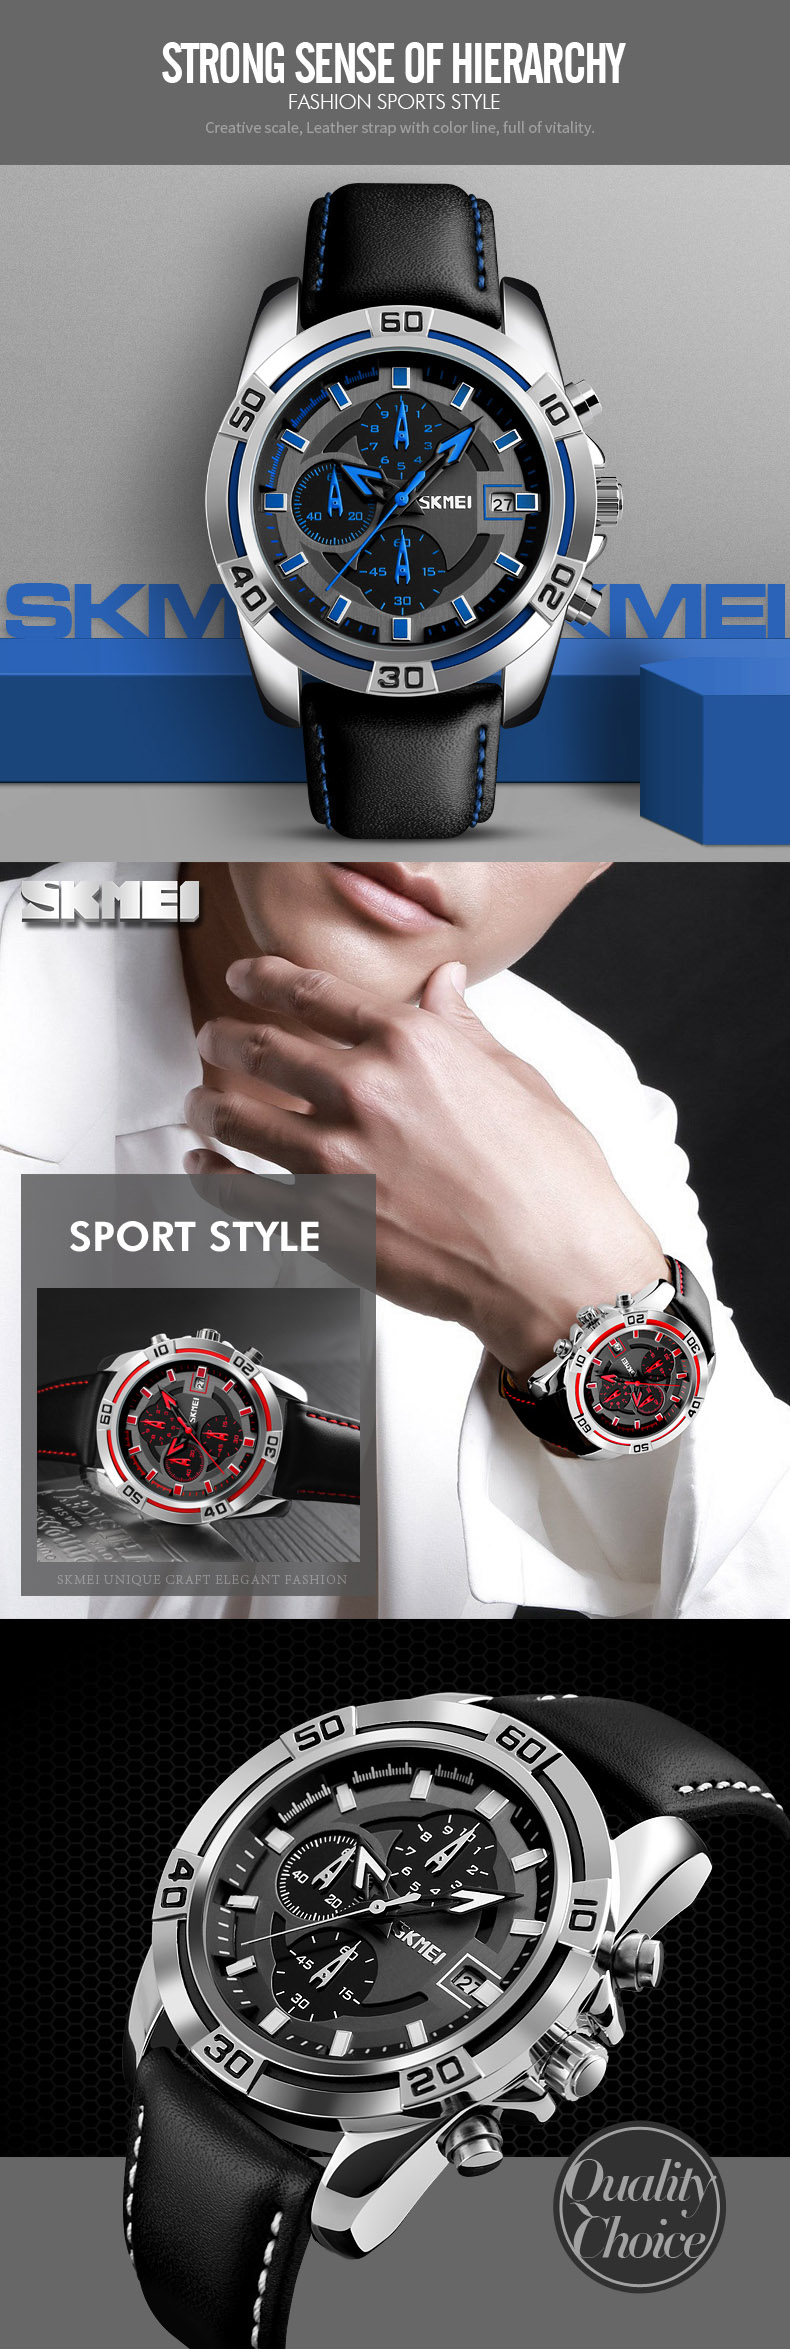 SKMEI 9156 Sport Watch Chronograph Leather Strap Waterproof Men Quartz Wrist Watch